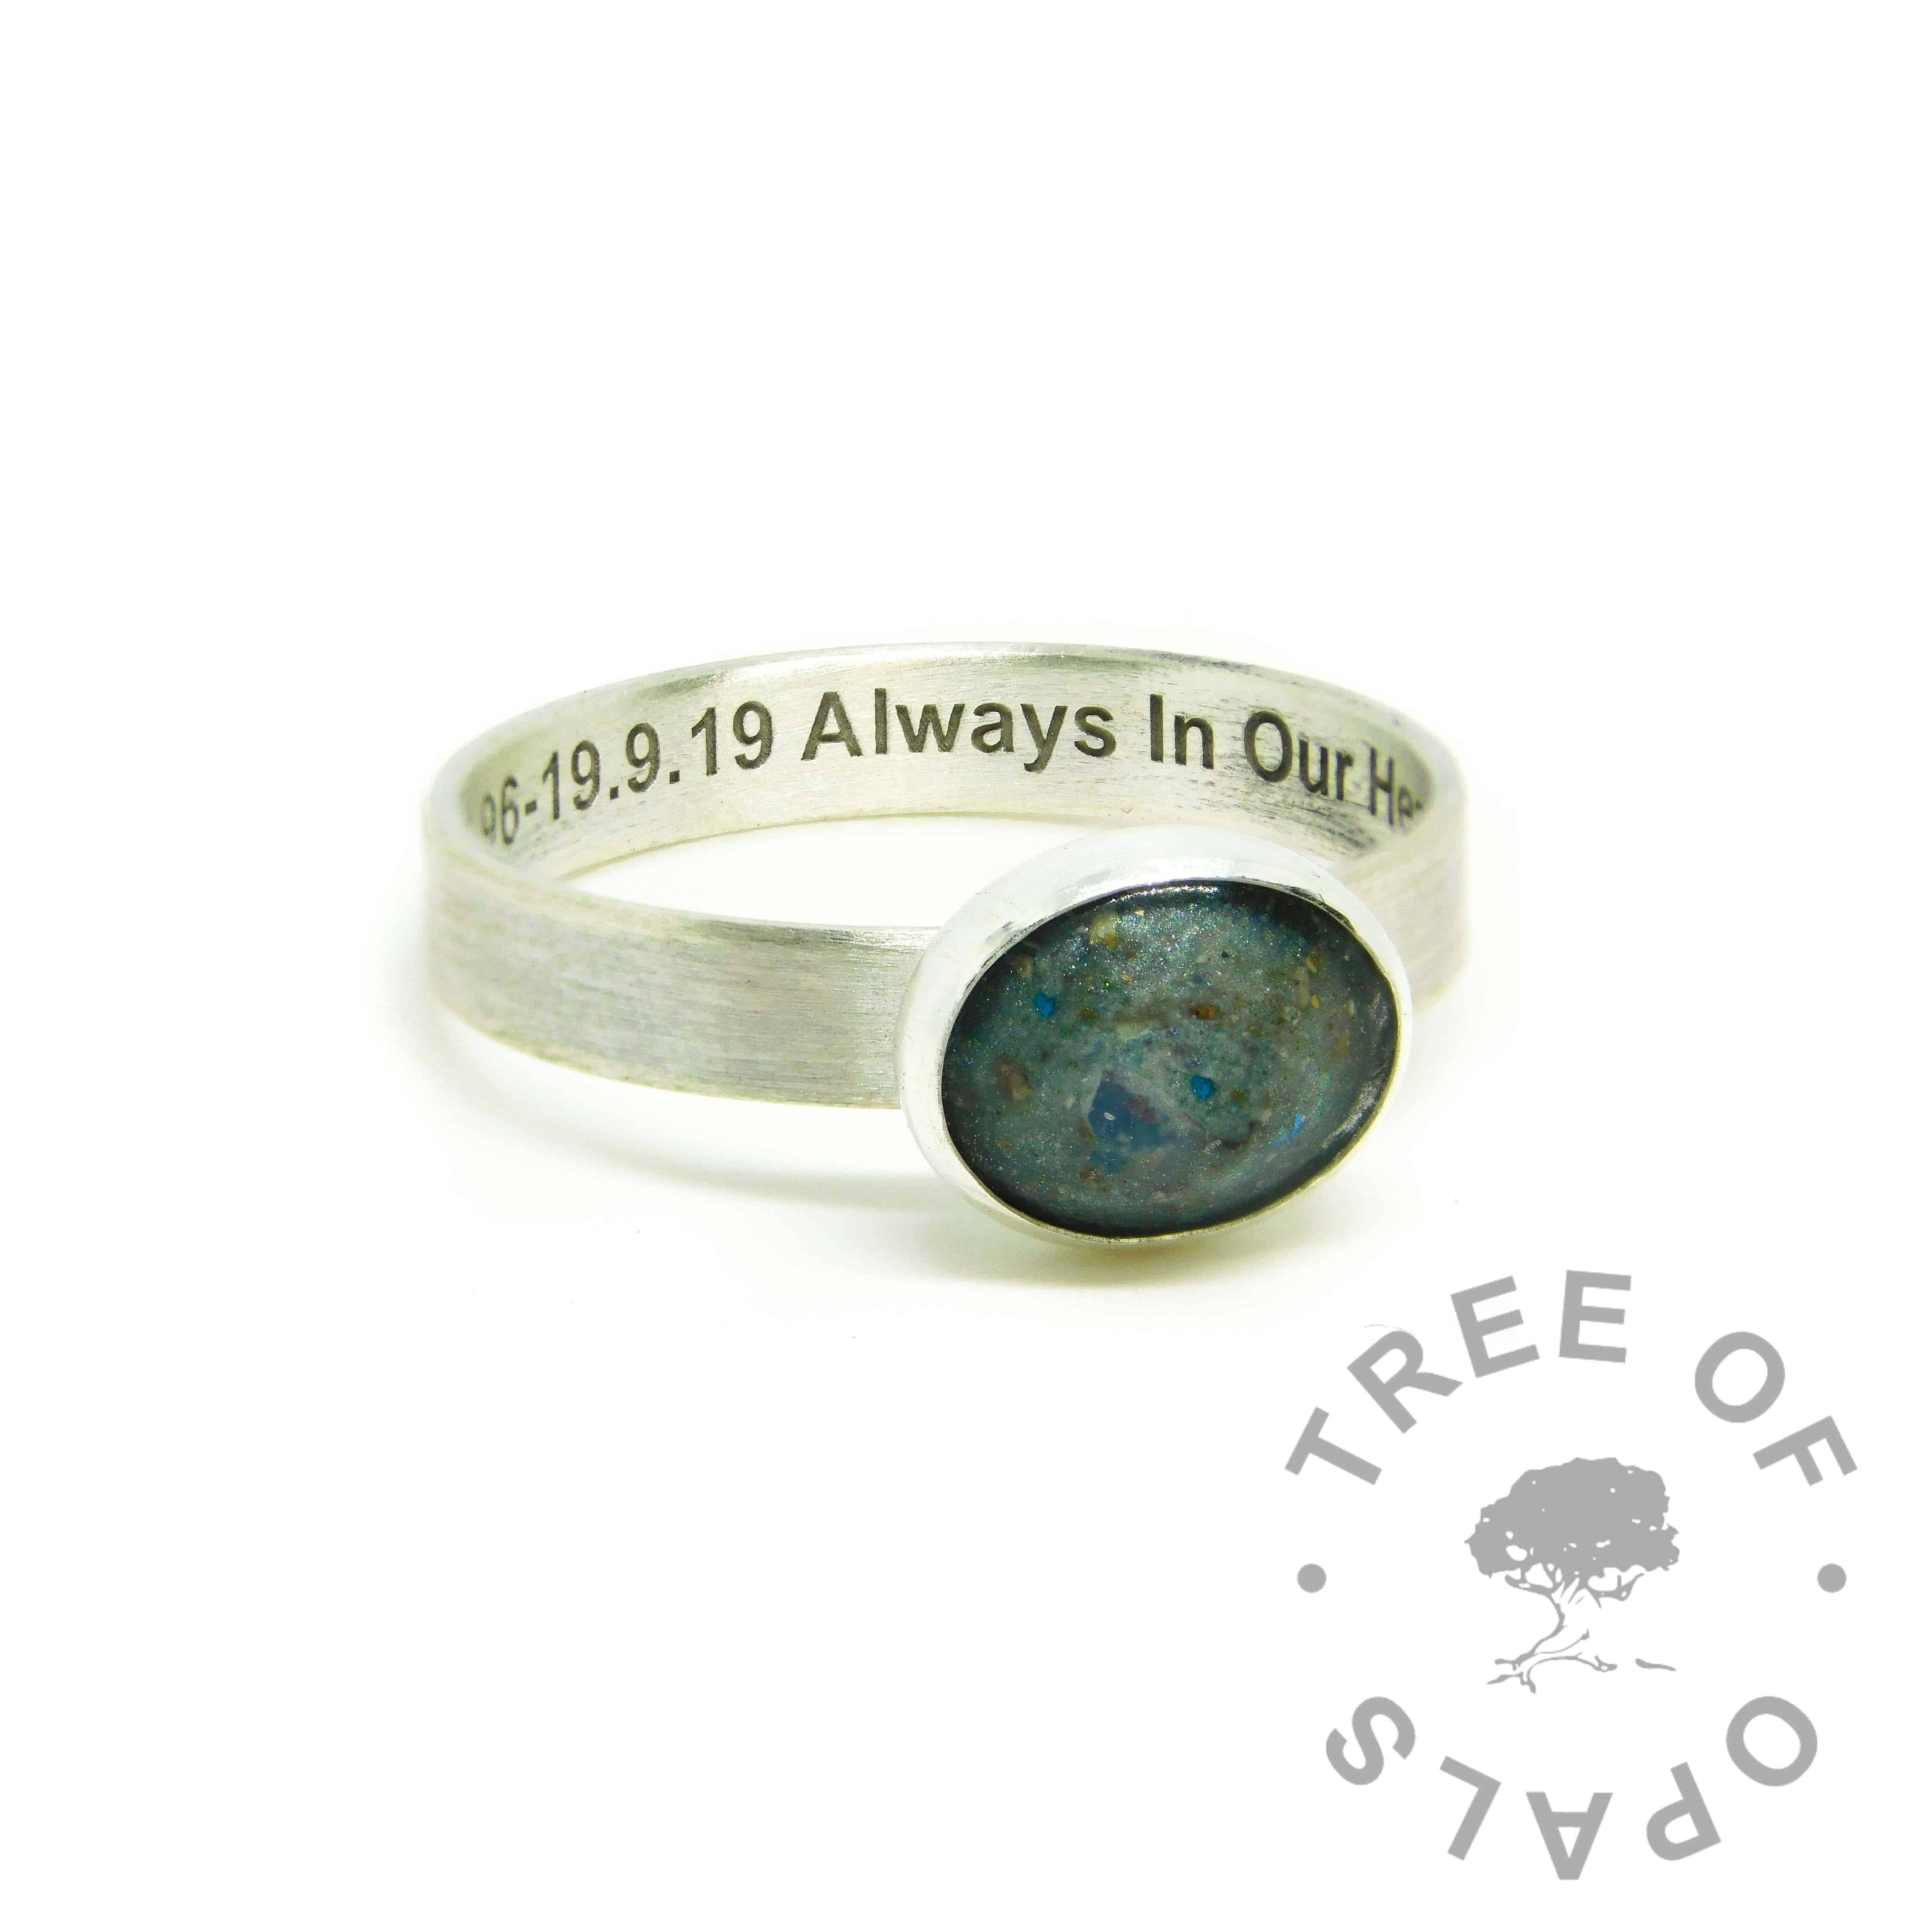 teal ashes ring, cremation ashes ring on brushed band. Mermaid teal resin sparkle mix. Engraved inside in Arial font